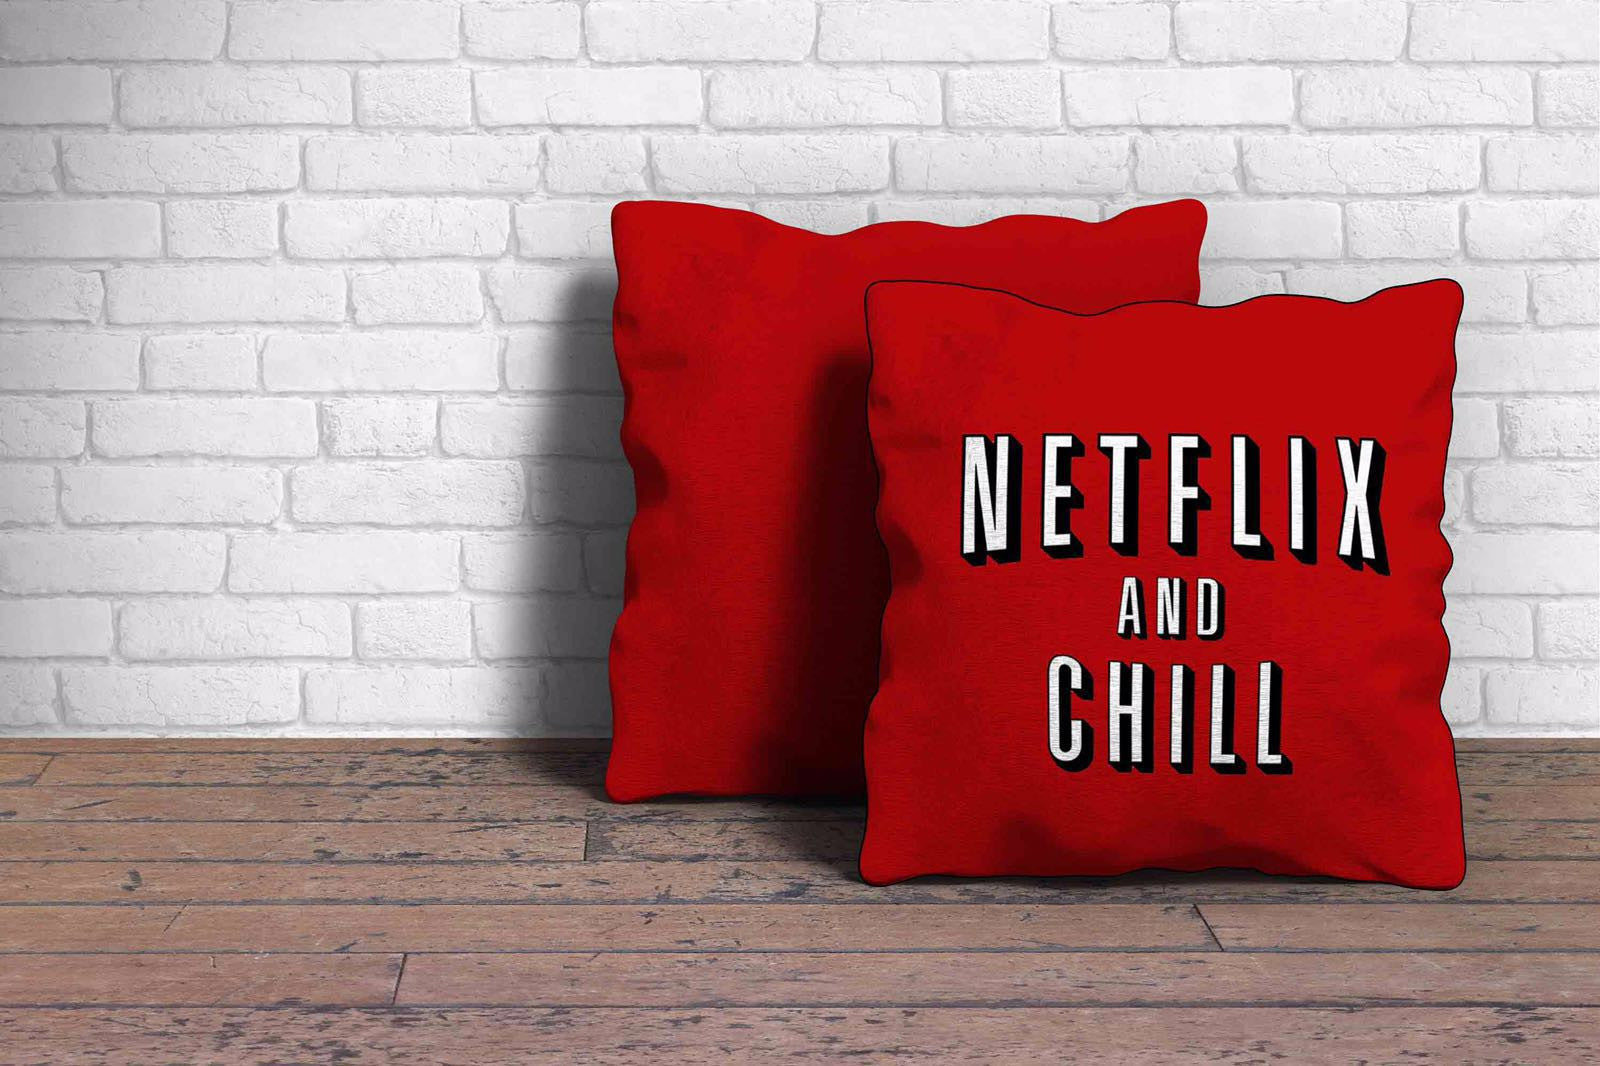 Netflix Cushion Cover - The Chic Pad